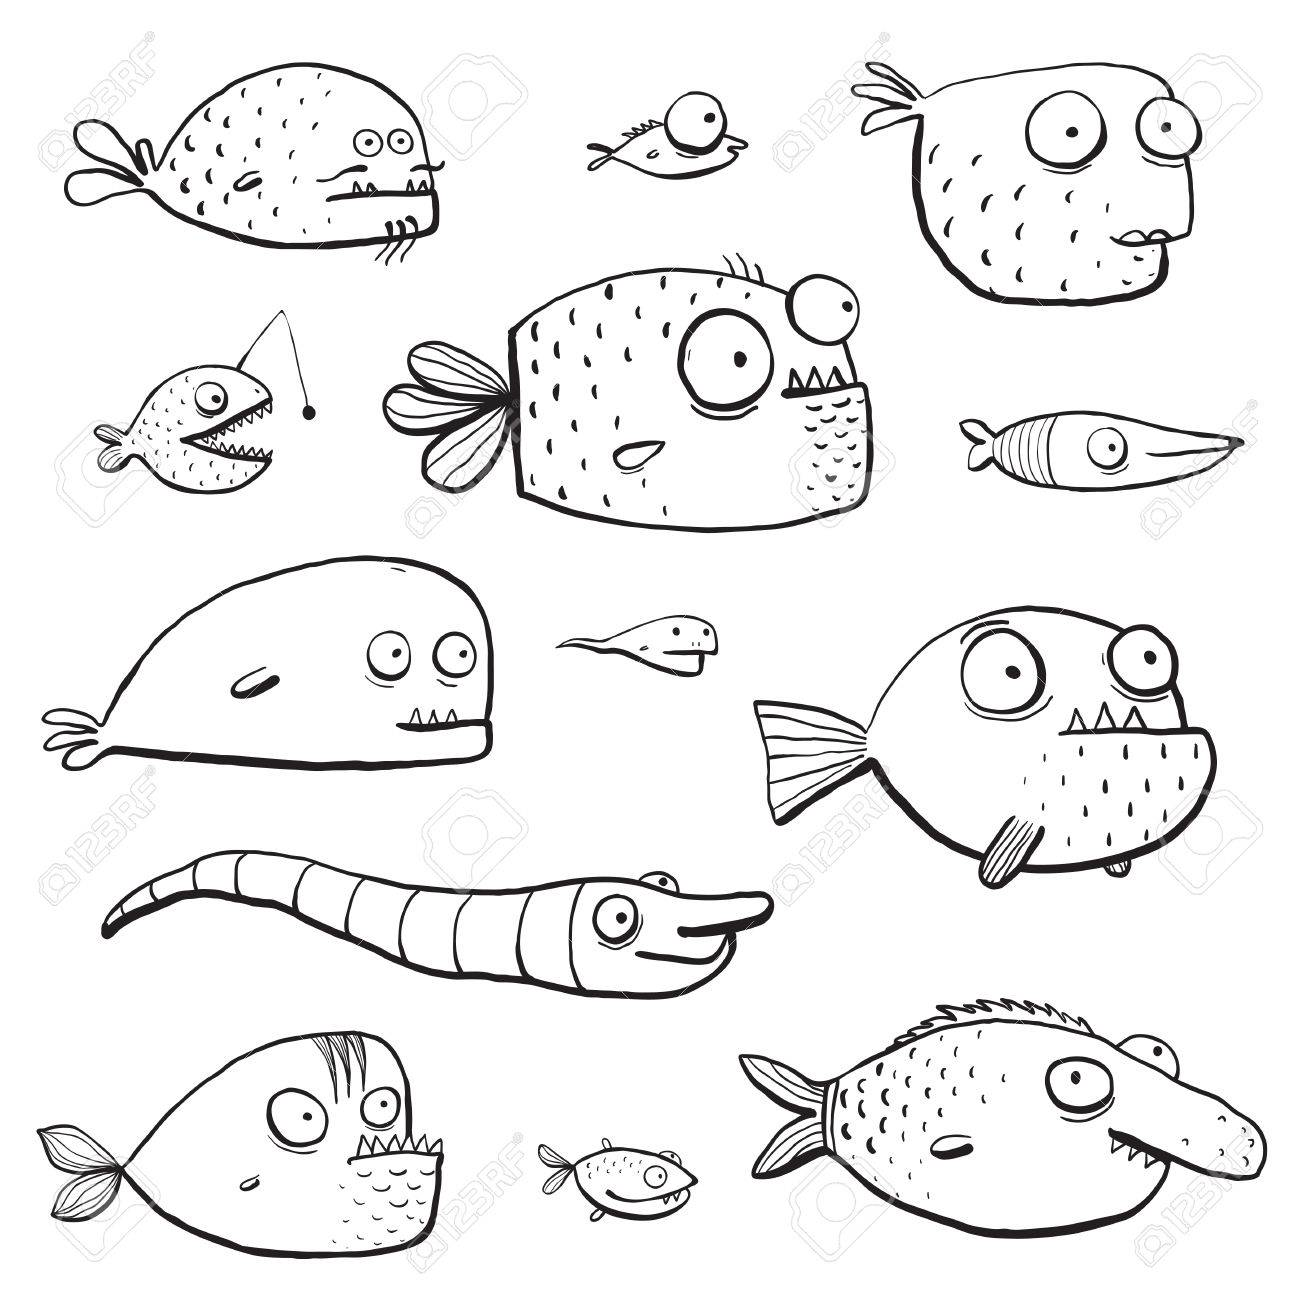 Coloring book page of fish - Black Outline Humor Cartoon Swimming Fish Characters Collection Coloring Book Pages Cute In Black Lines